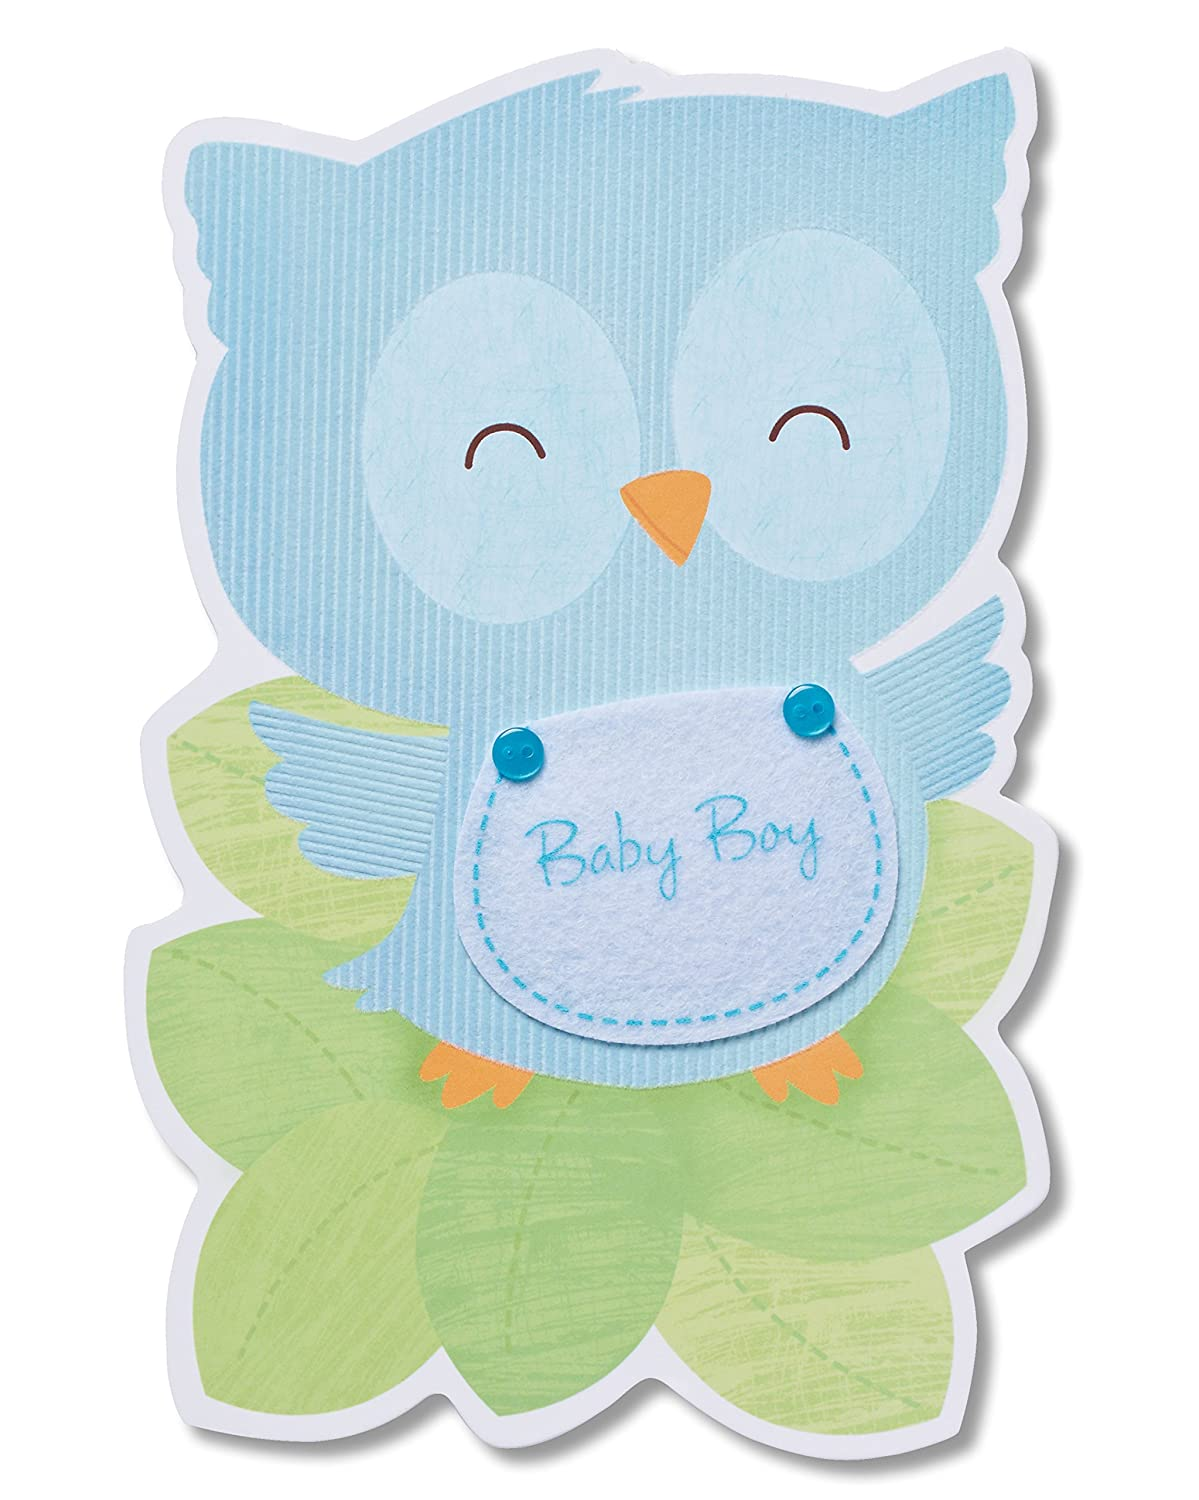 Amazon american greetings baby boy new baby congratulations amazon american greetings baby boy new baby congratulations card office products kristyandbryce Gallery